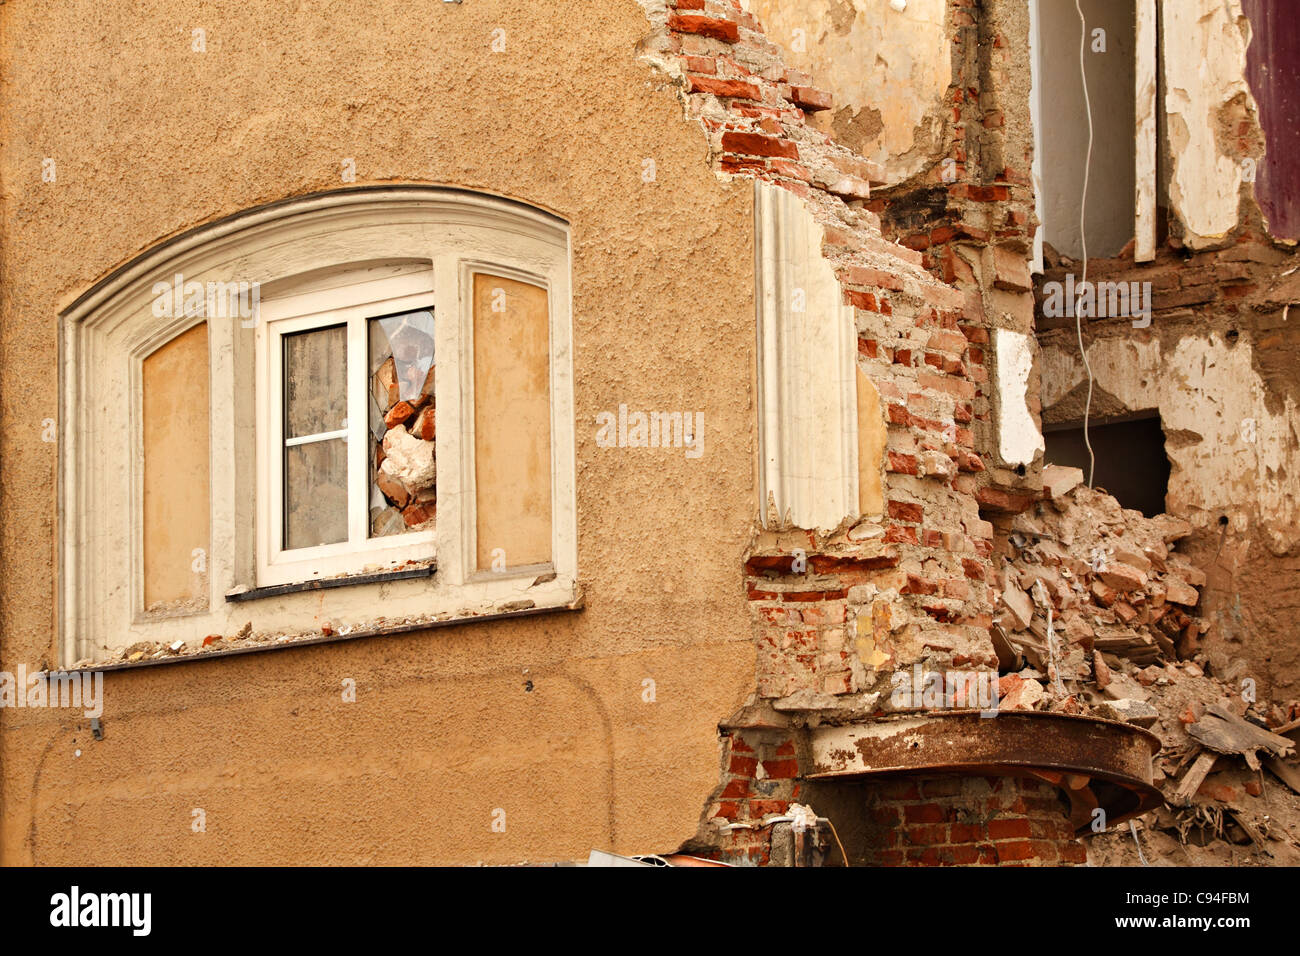 Broken window at a demolition site, Munich Upper Bavaria Germany - Stock Image